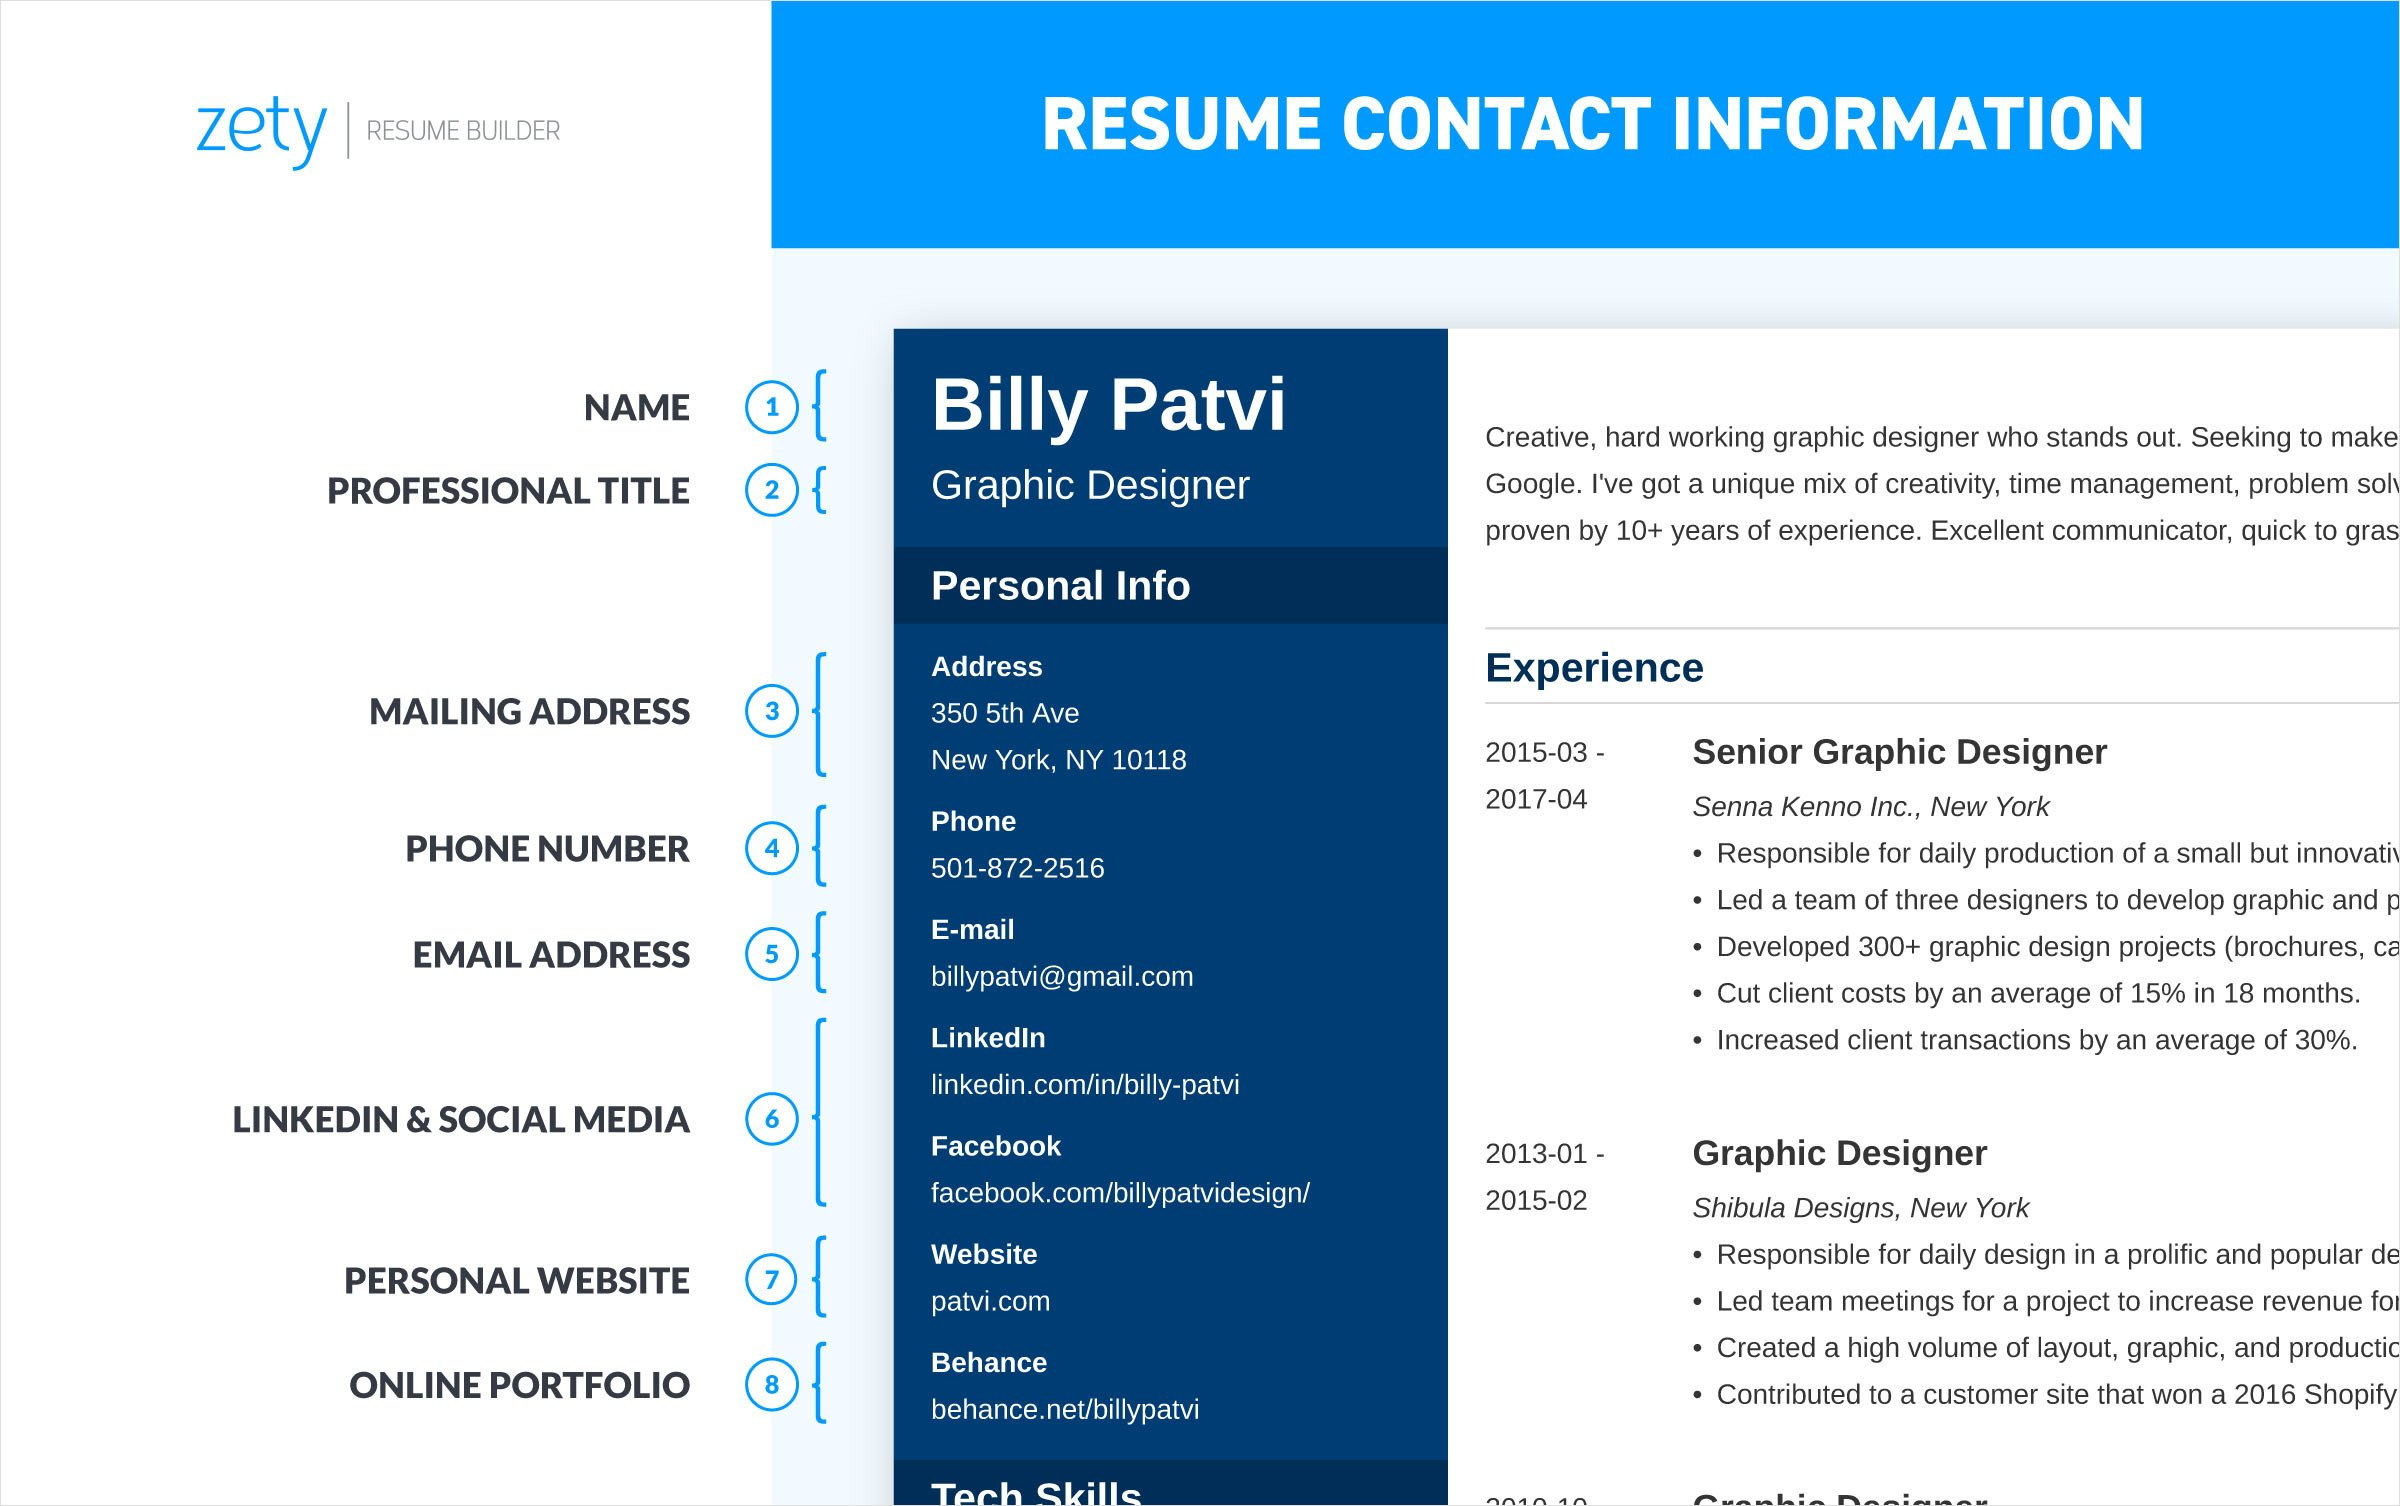 How To Make The Perfect Resume For Free How To Make A Resume For A Job From Application To Interview In 24h